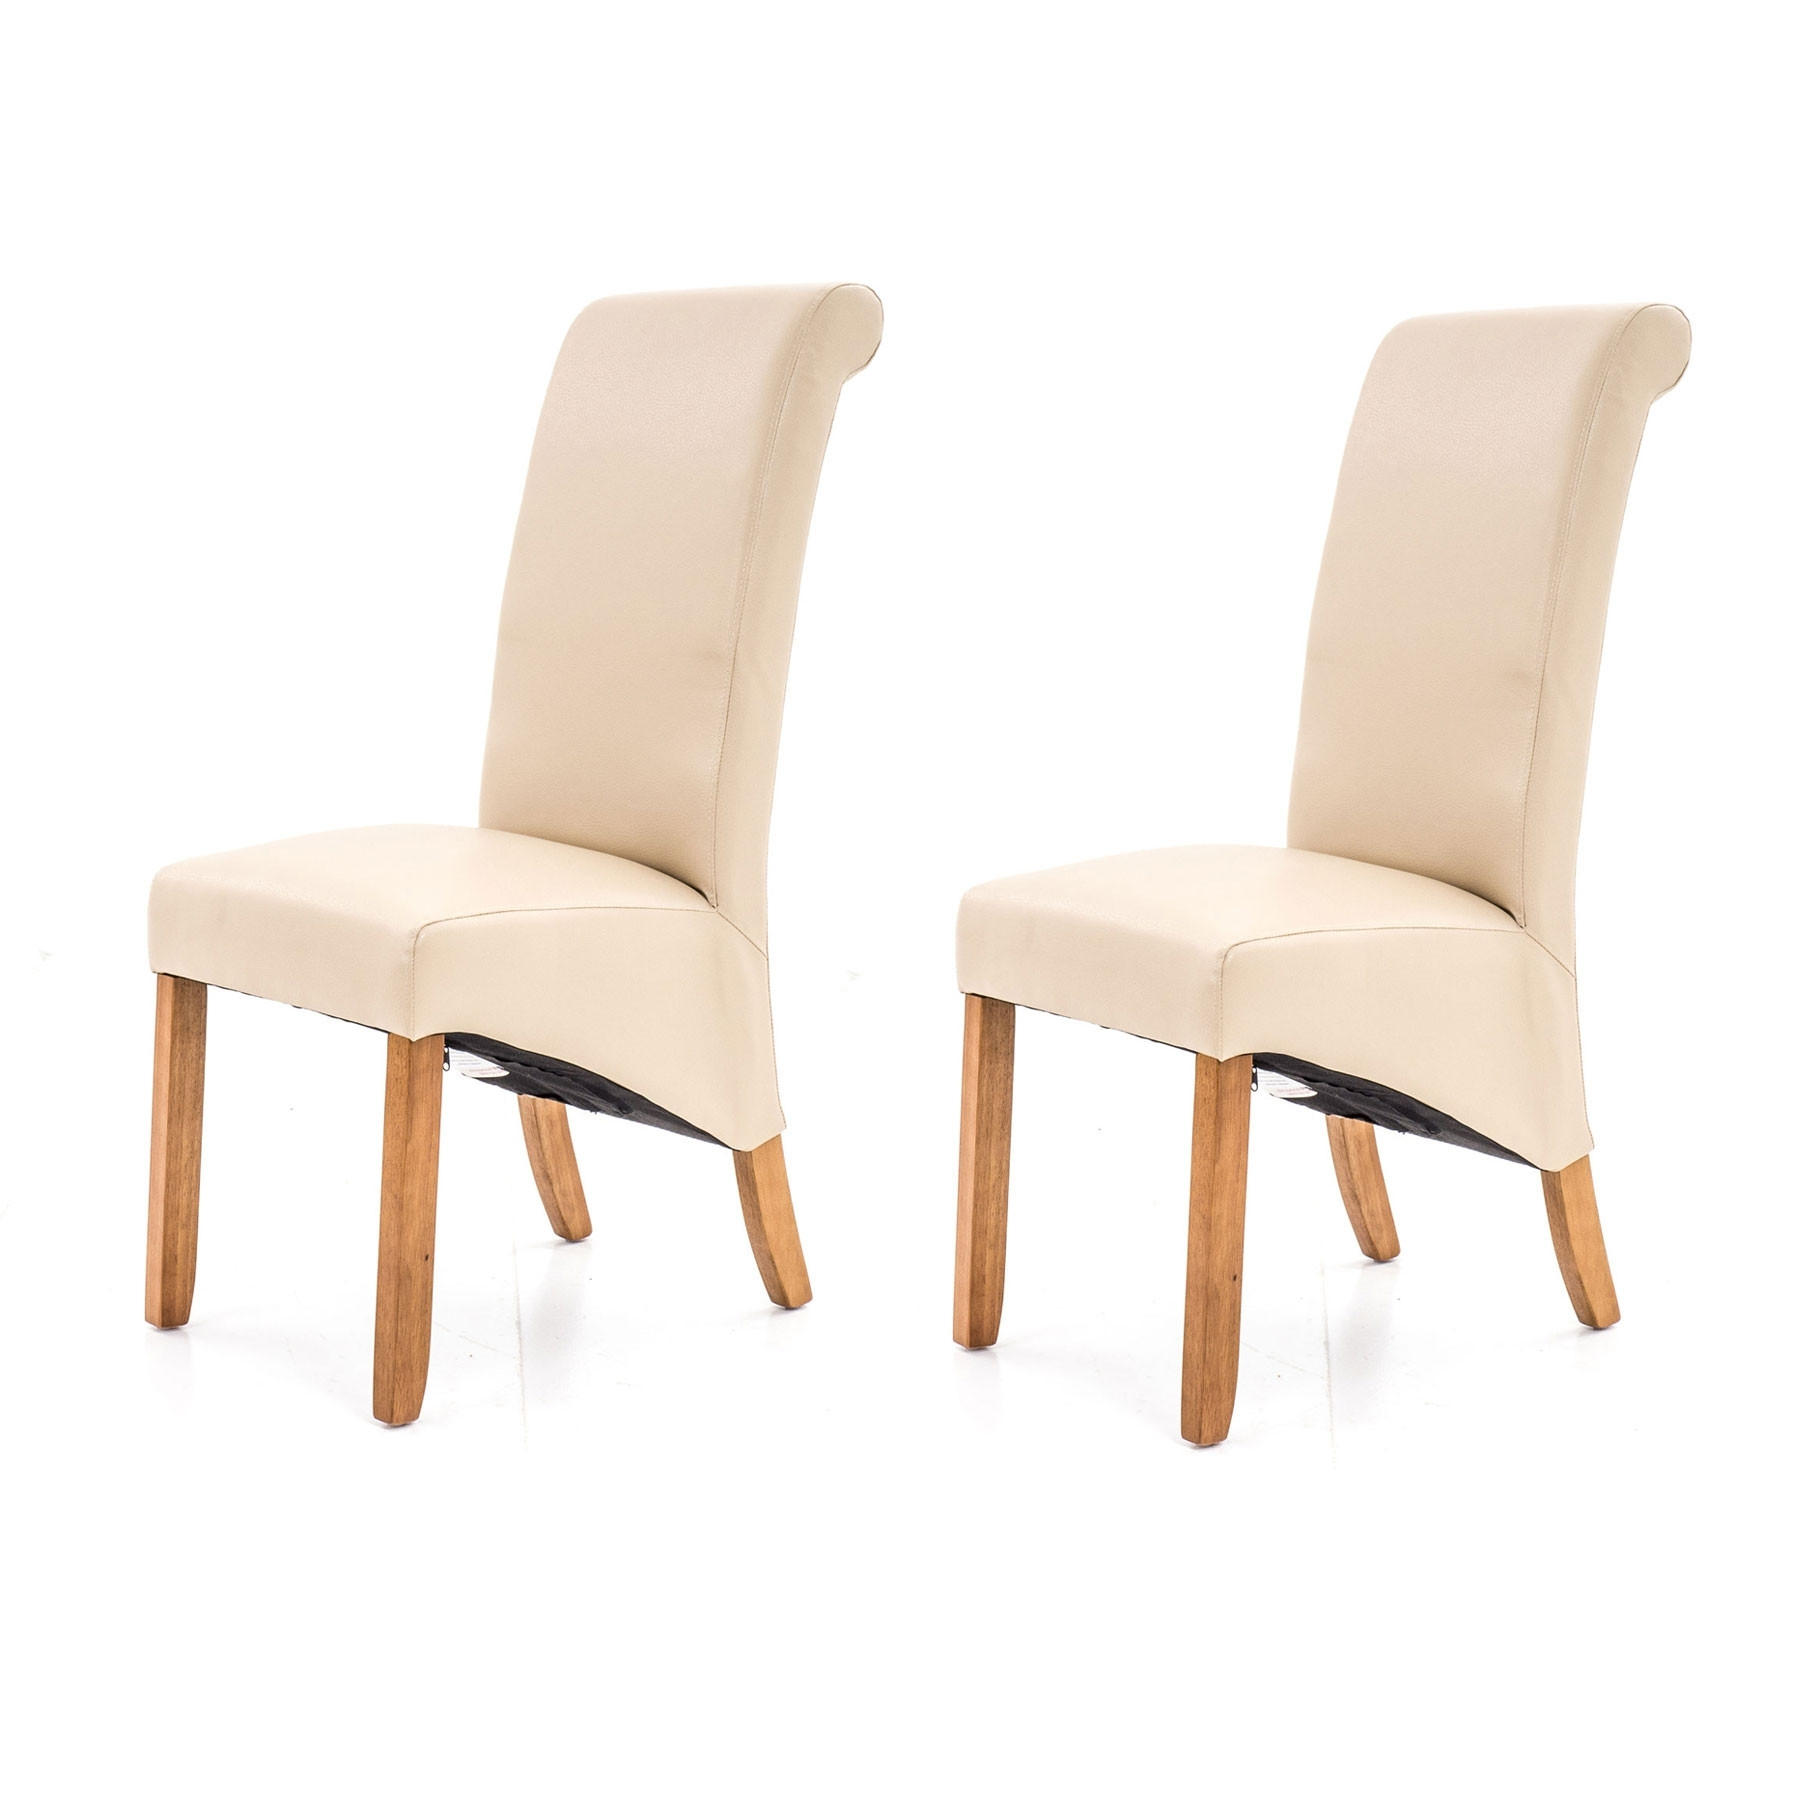 2 Porto Cream Faux Leather Dining Chairs Regarding Famous Cream Faux Leather Dining Chairs (View 18 of 25)